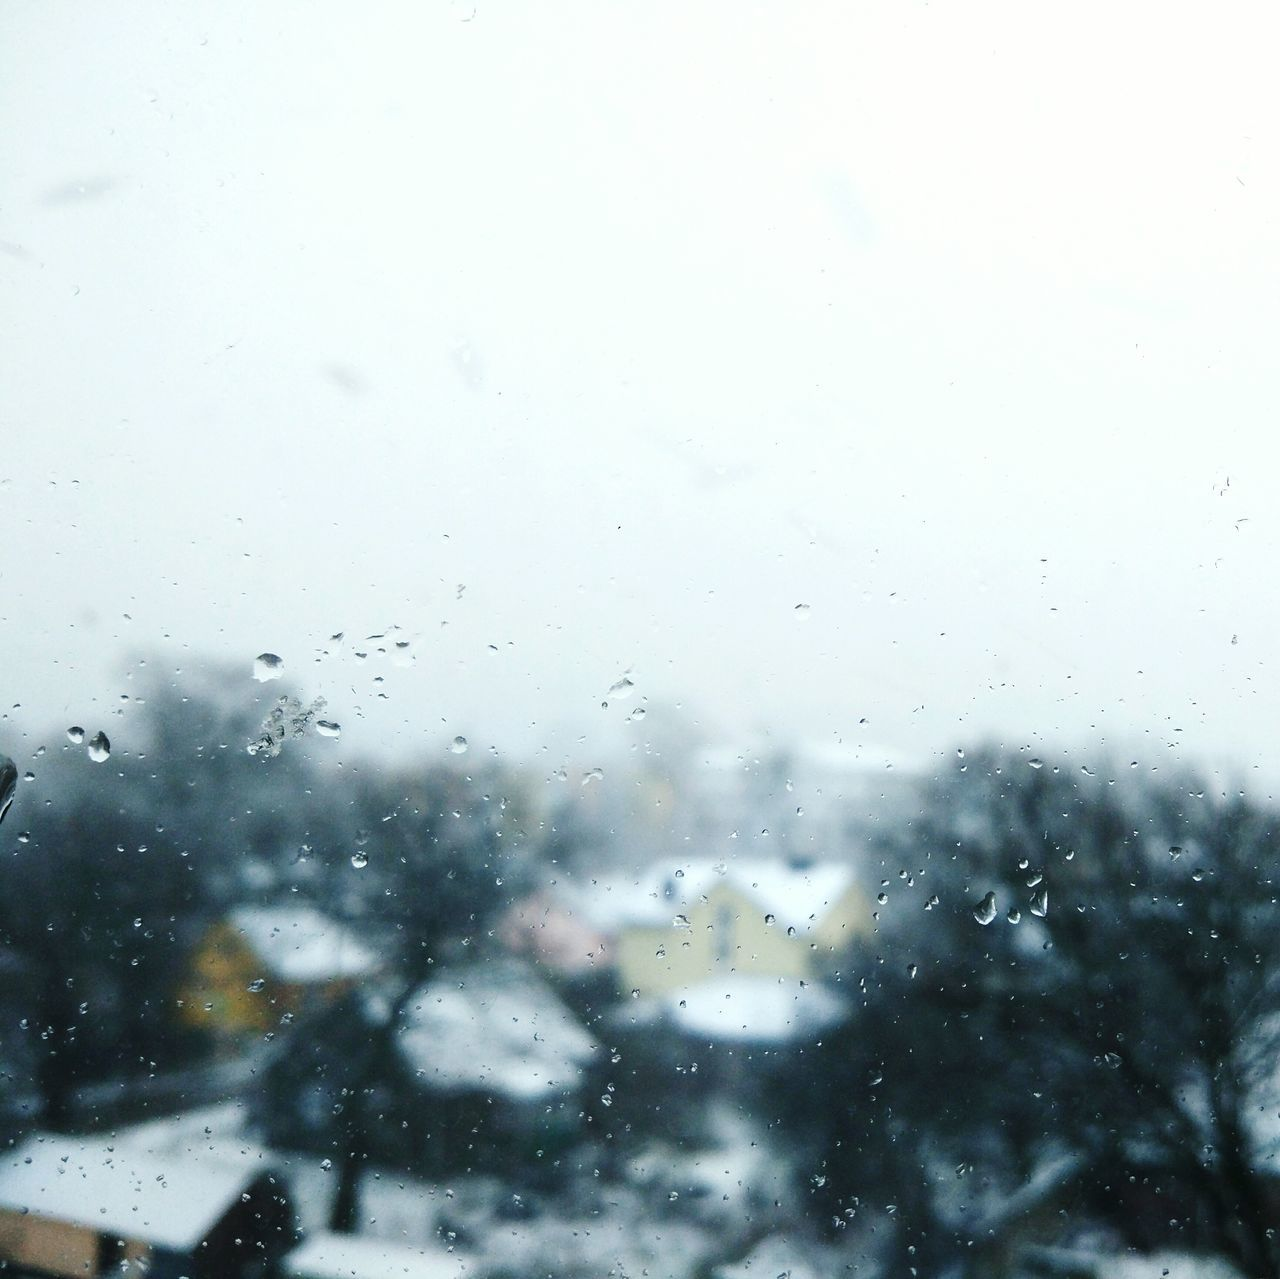 Glass - Material Rain Weather Drop Wet Window Rainy Season Transparent RainDrop Condensation Monsoon Water Nature Sky Looking Through Window No People Cloud - Sky Day Back To School Winter First Eyeem Photo EyeEm Snow ❄ Minimalism Eyeemphoto